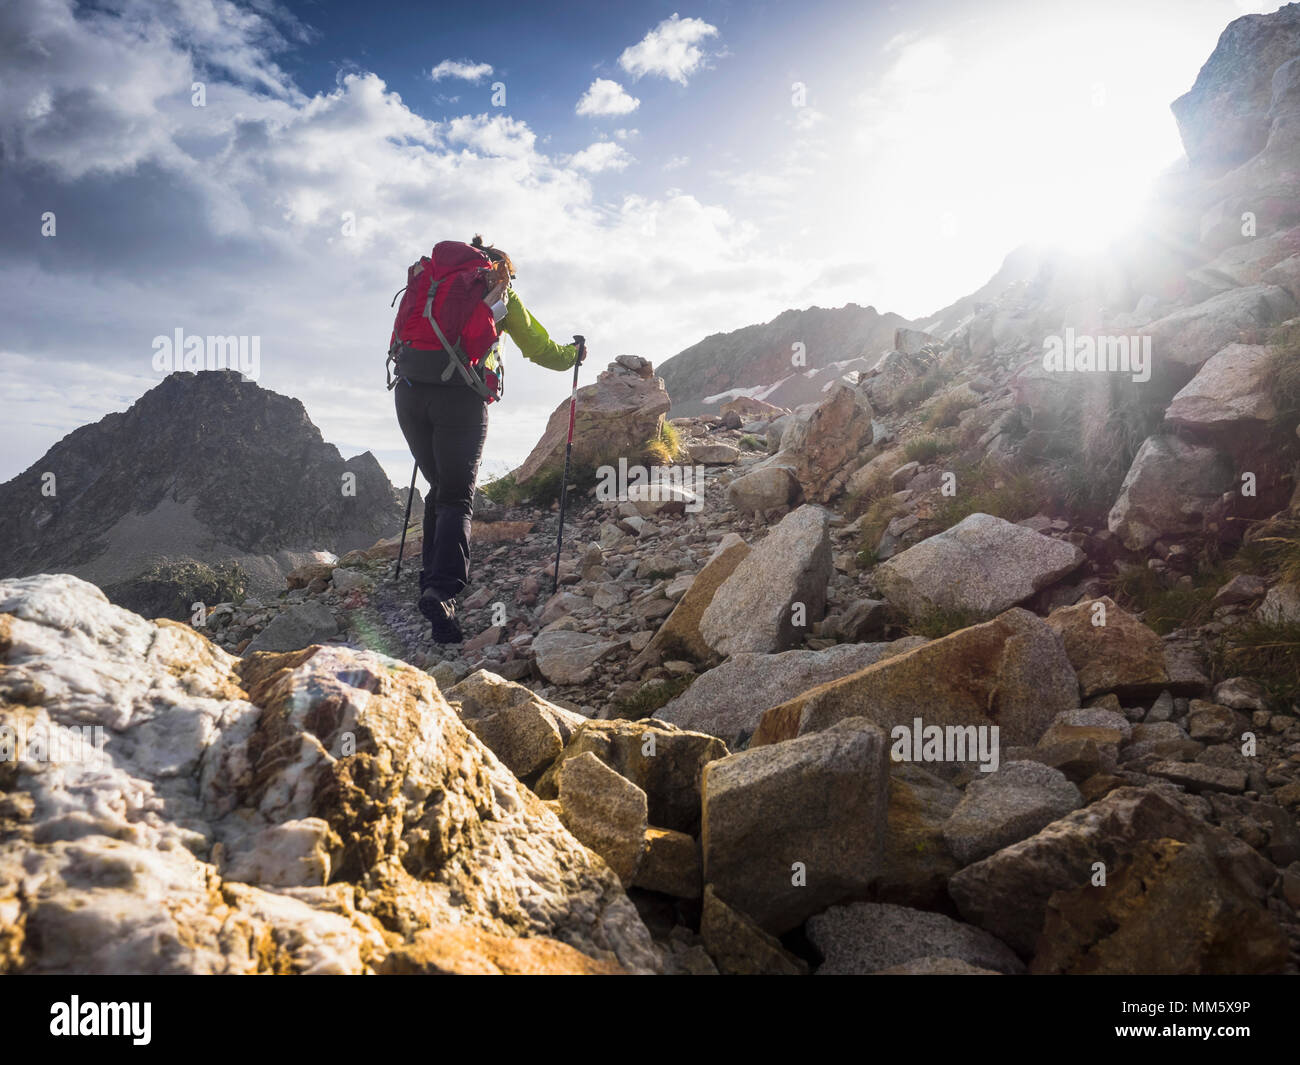 Woman hiking in the High Pyrenees ascending to mount Vignemale, Cauterets, France - Stock Image